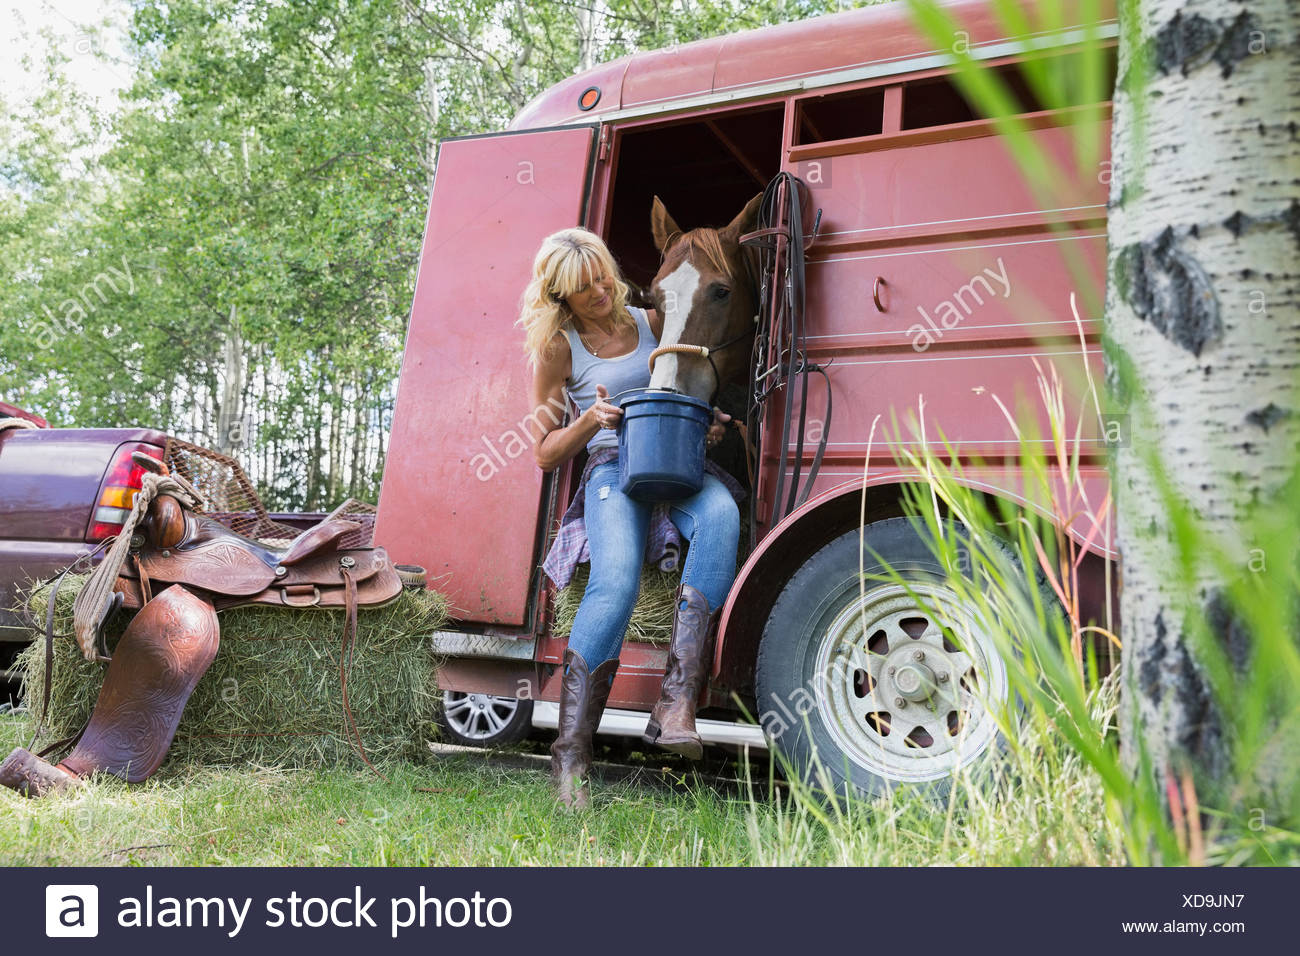 Woman feeding horse in trailer - Stock Image